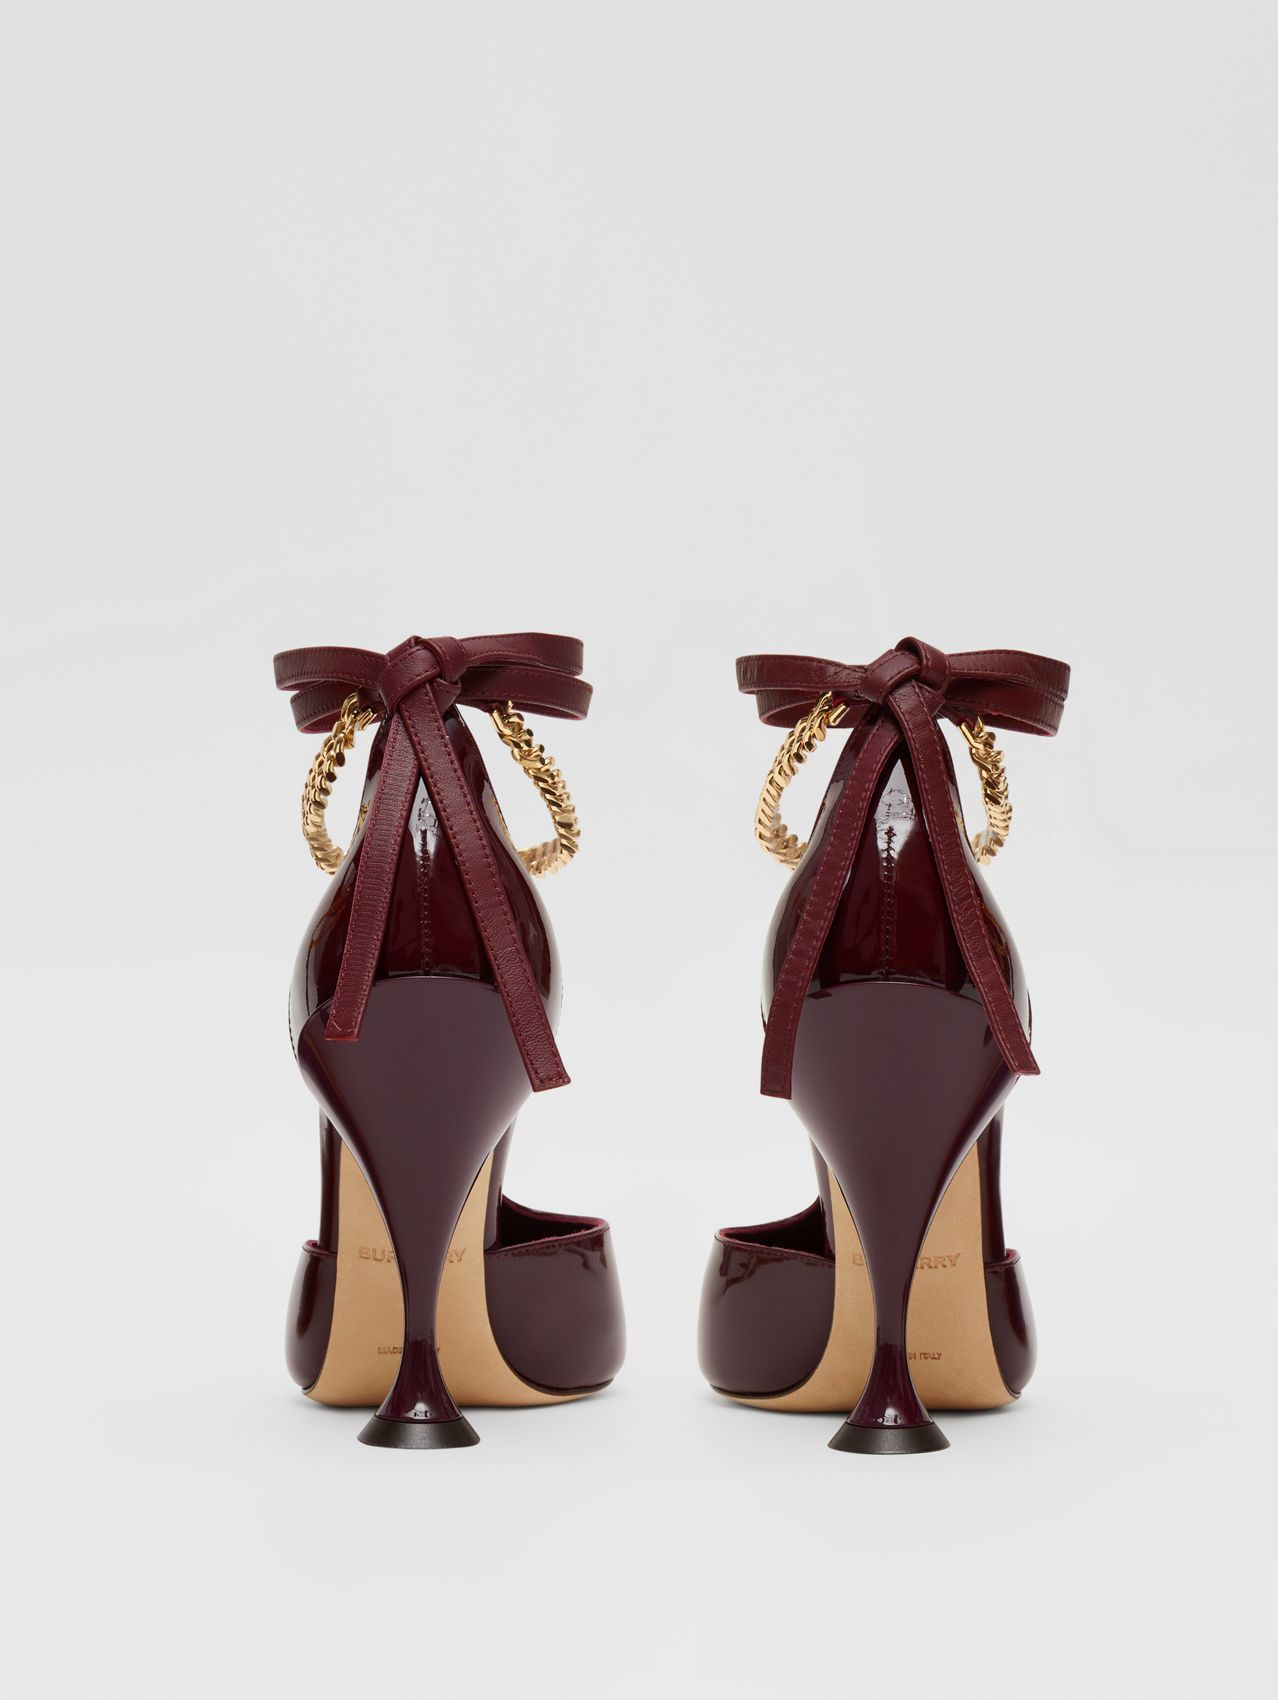 Chain Detail Patent Leather Pumps in Oxblood